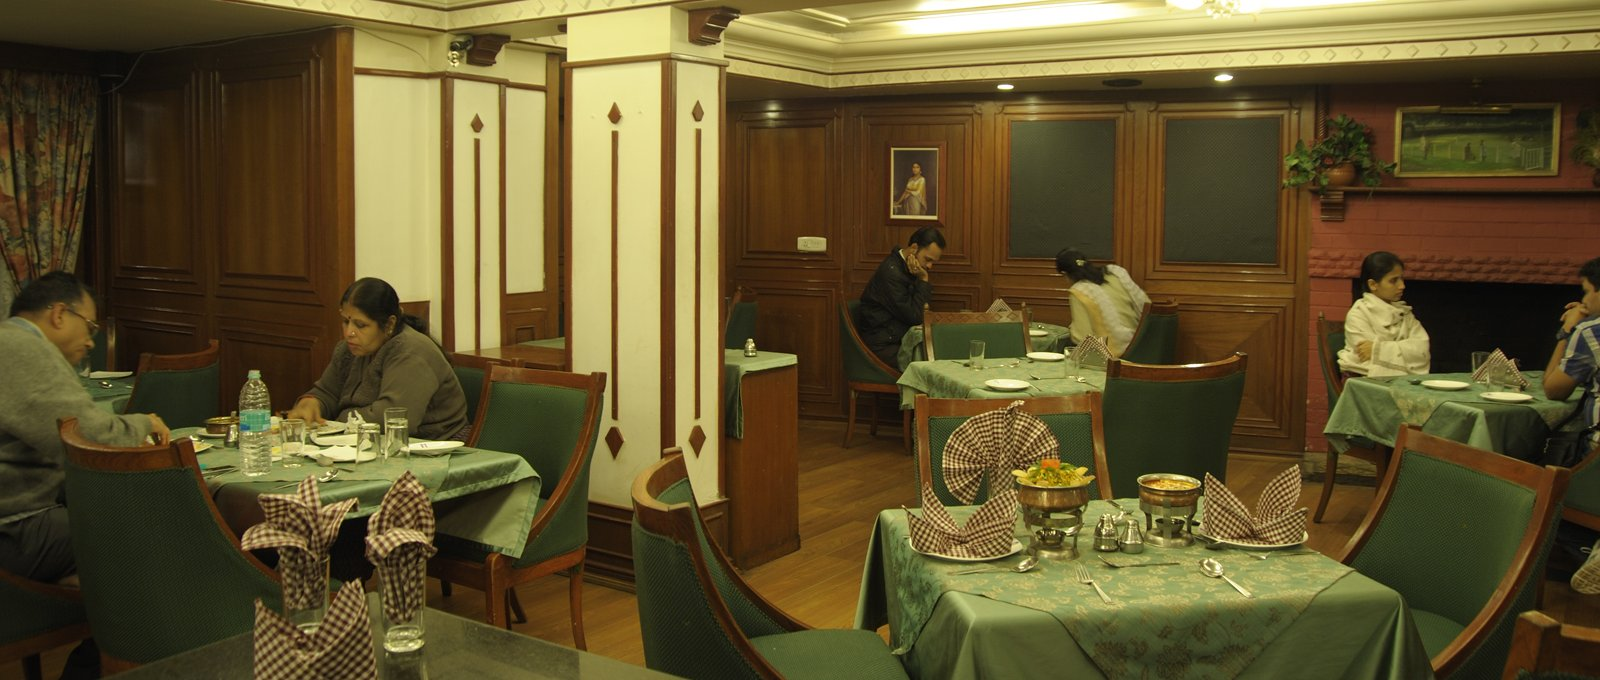 Chandan Restaurant